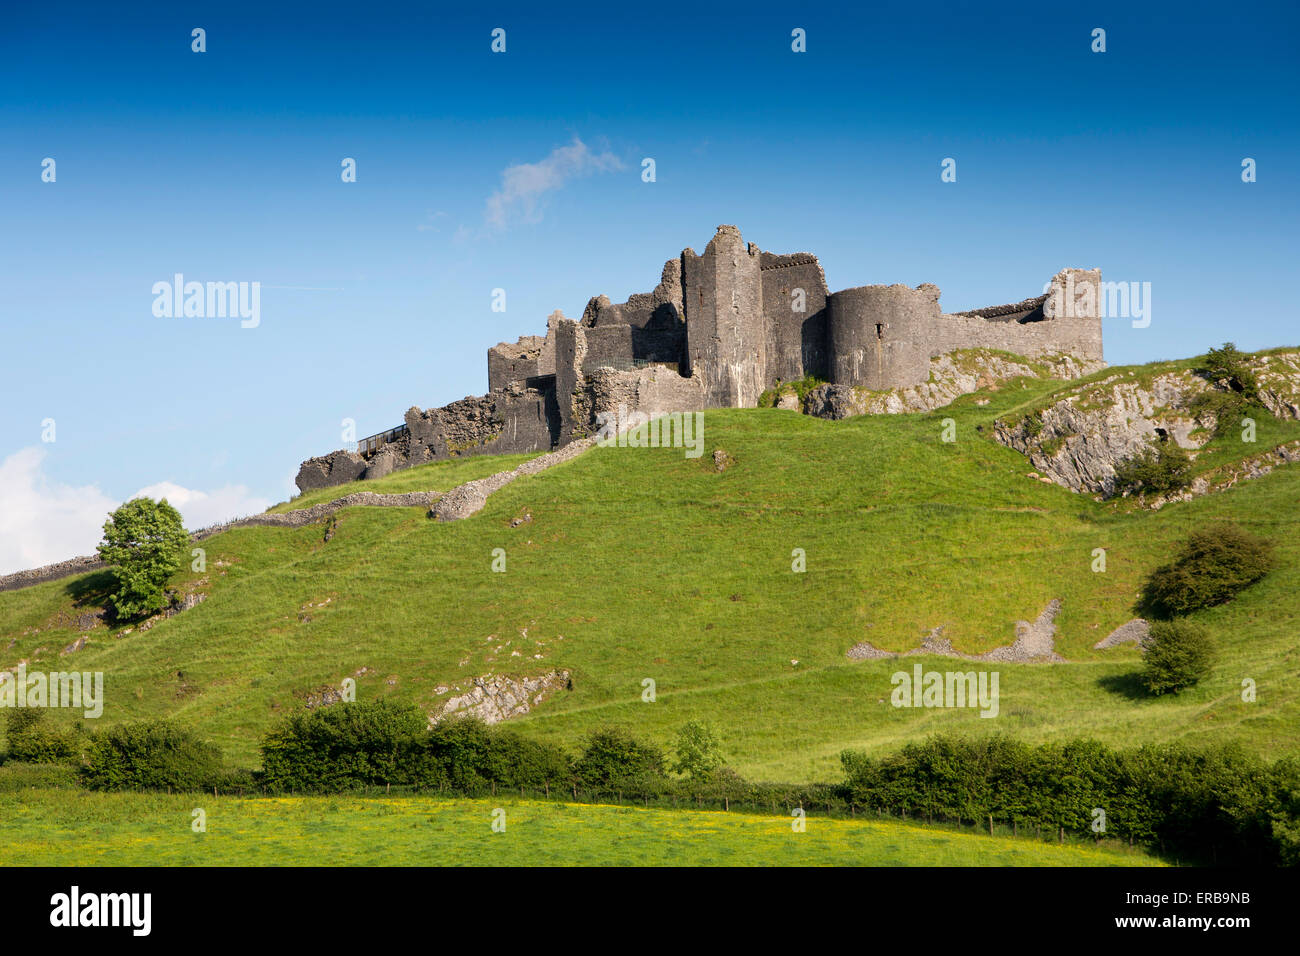 Wales, Carmarthenshire, Carmarthenshire, Trapp, Carreg Cennen, privately owned hilltop Castle - Stock Image